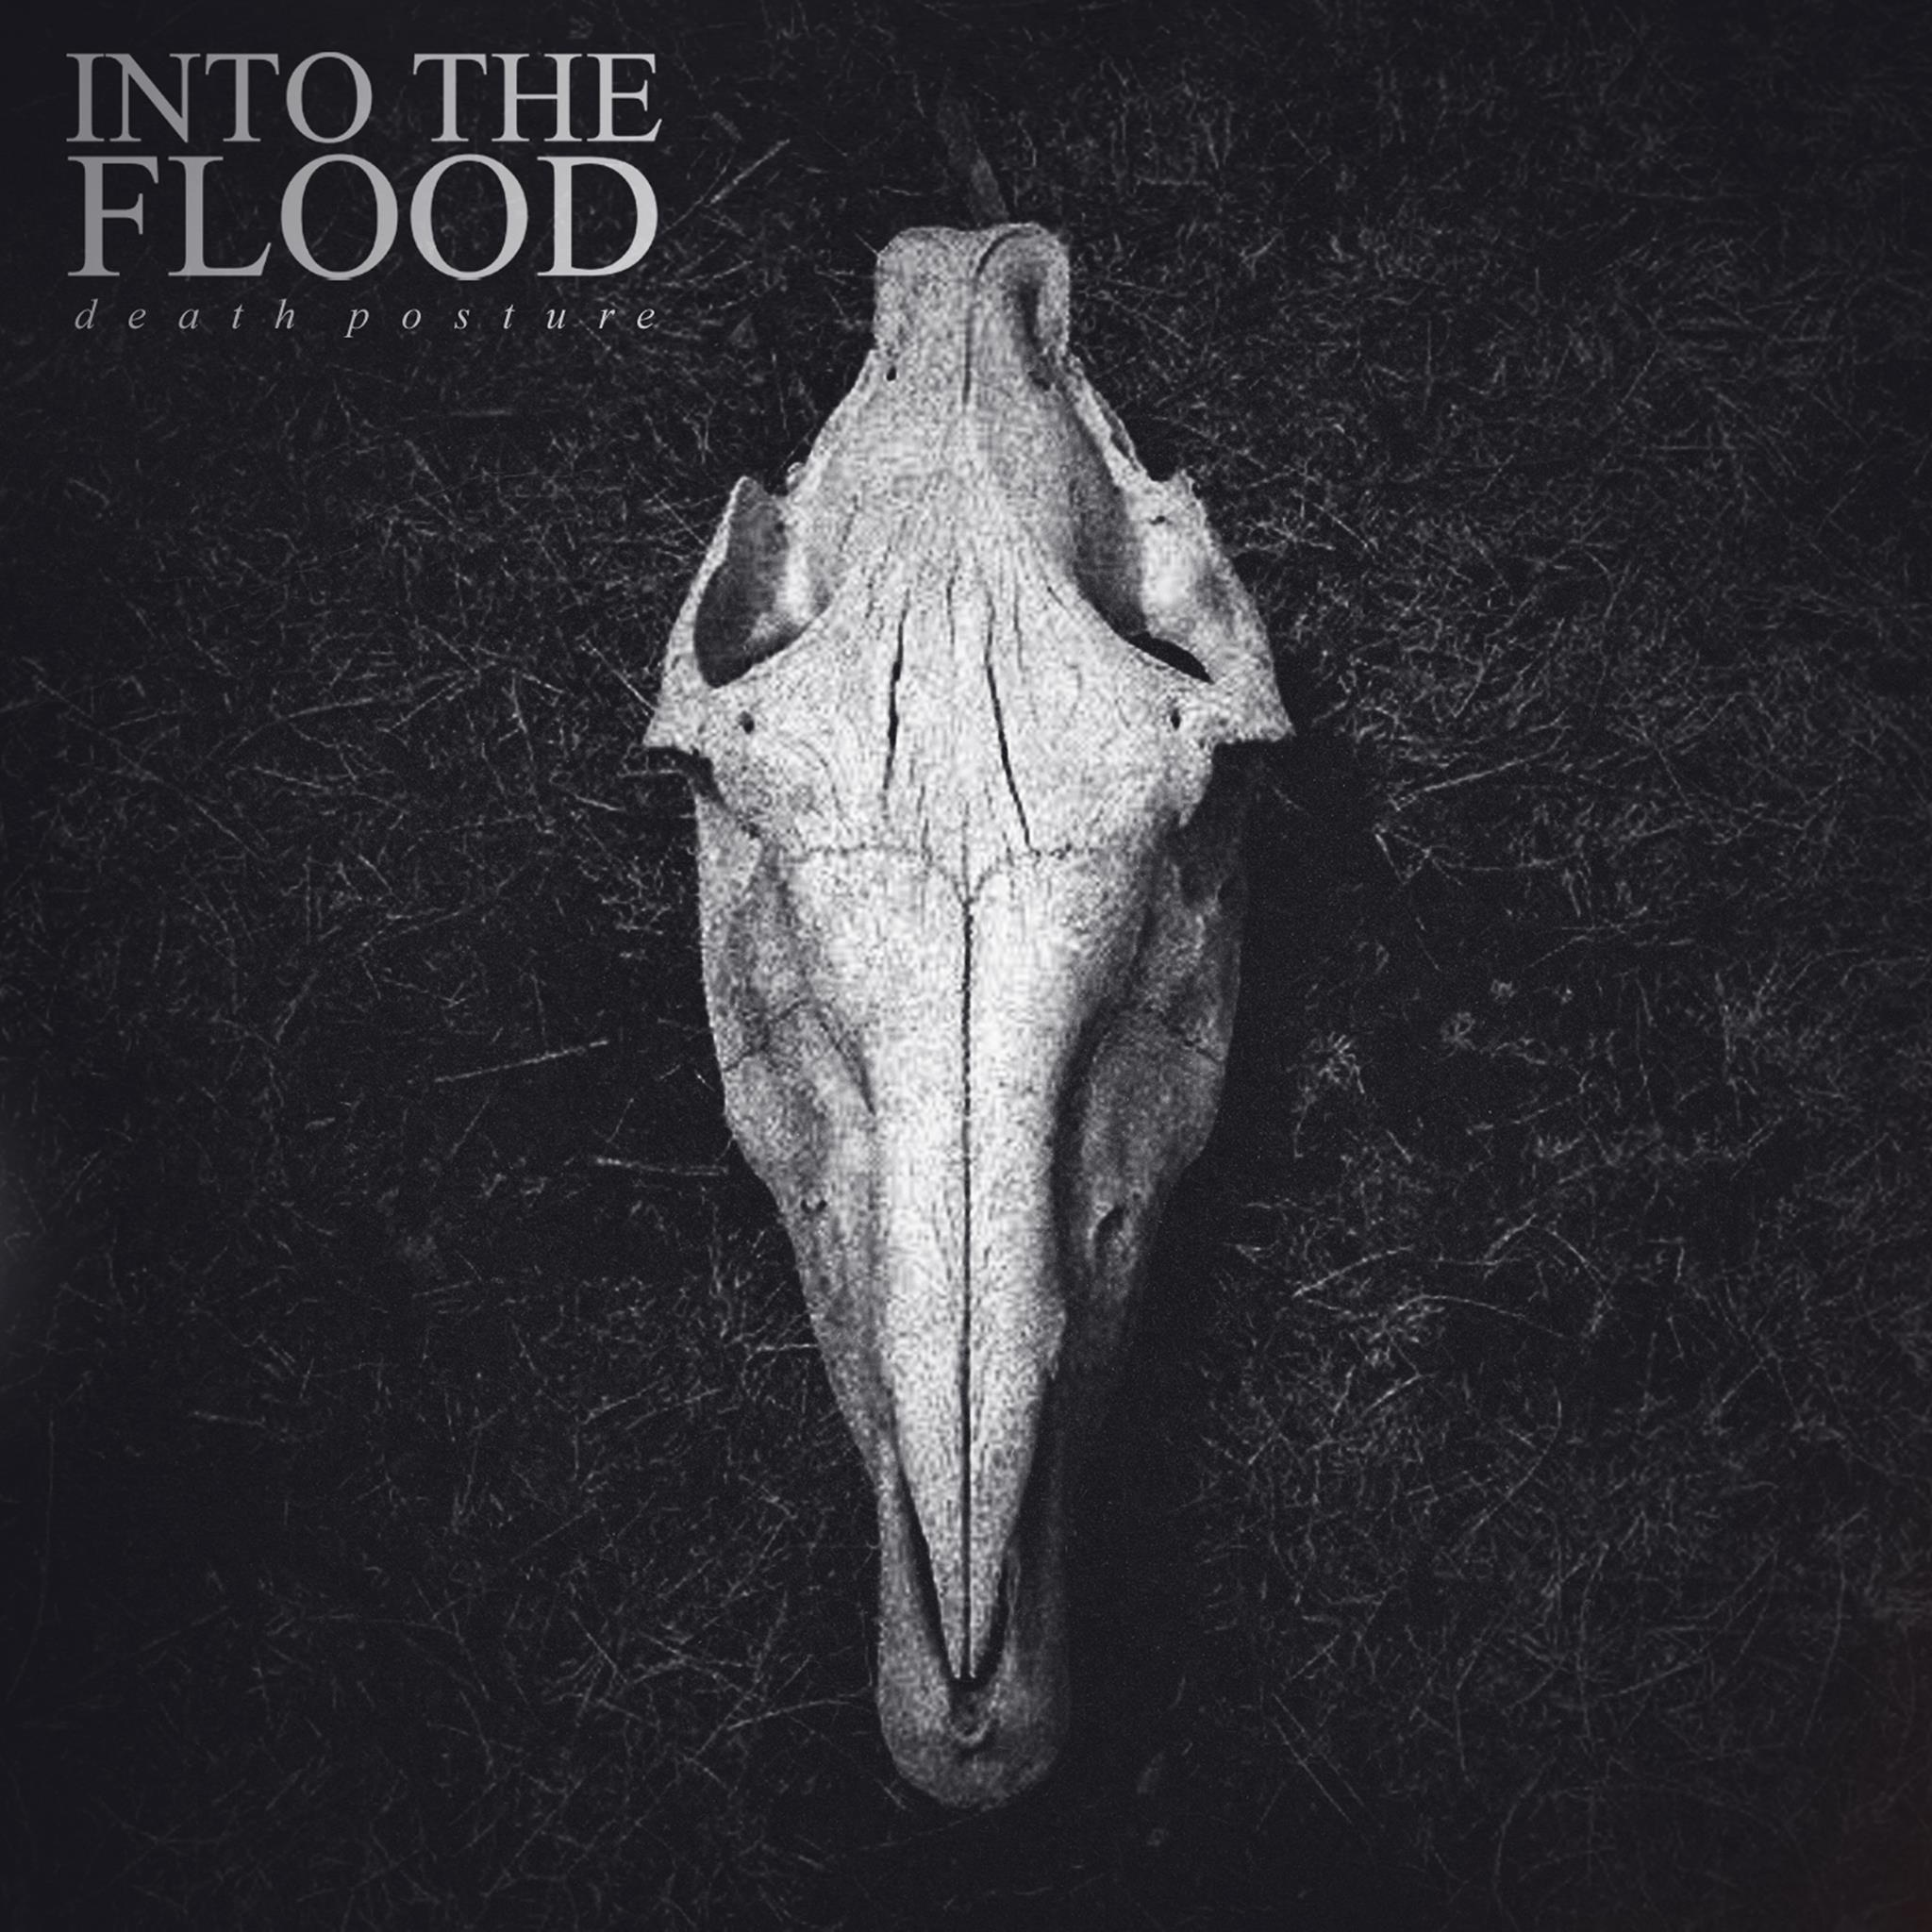 Into The Flood - The Glass House My Father Built [Single] (2015)